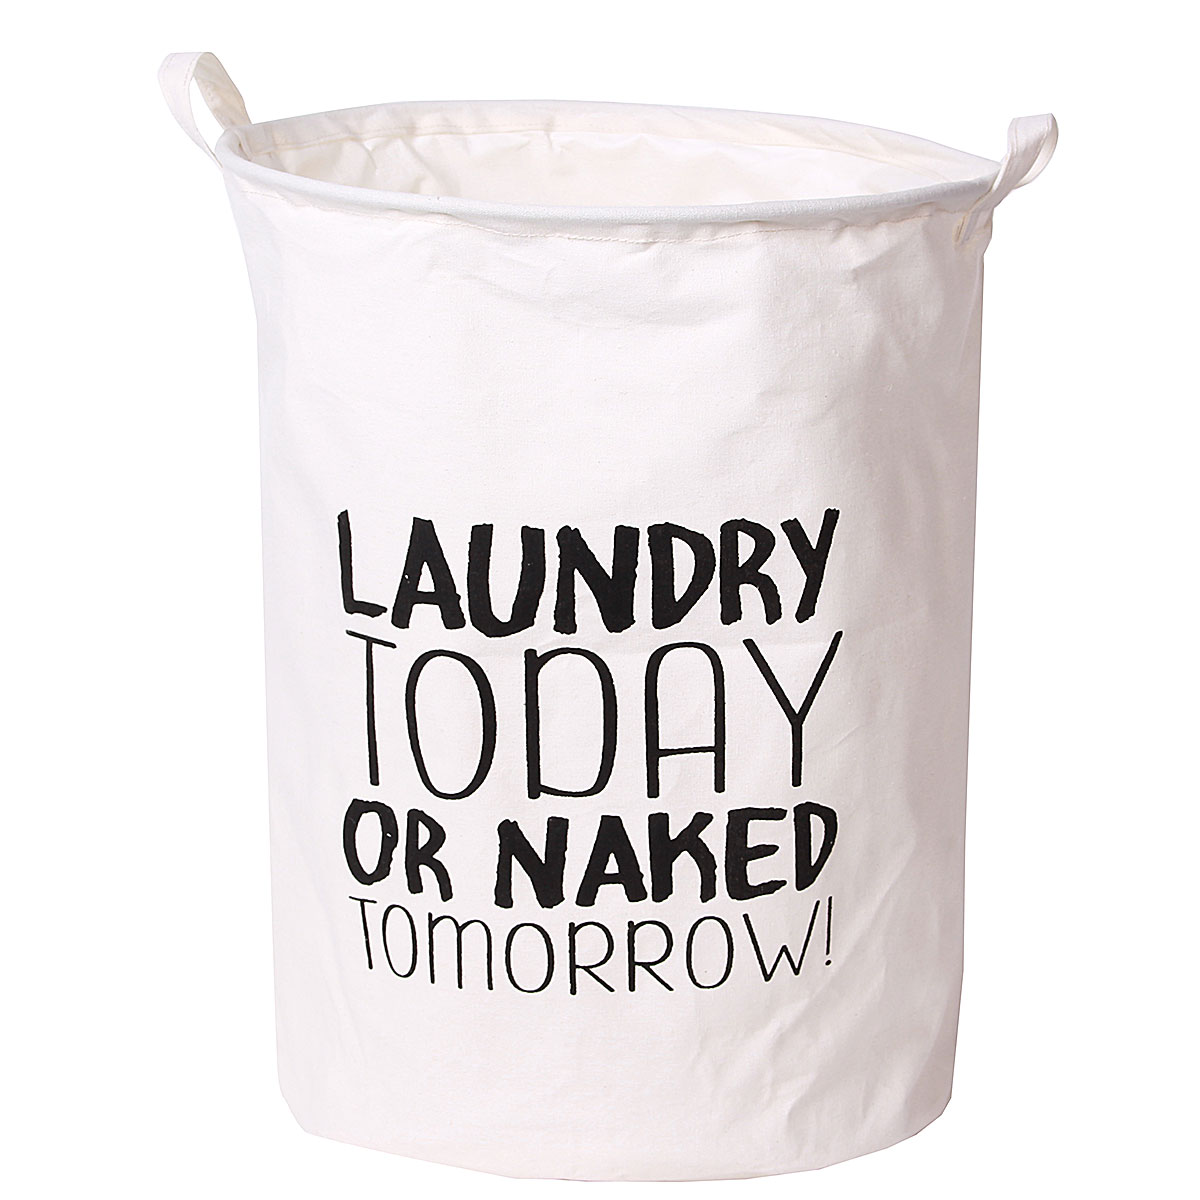 Grtsunsea Foldable Laundry Bag Basket Cotton Linen Hamper Dirty Washing Clothes & Toy Storage Organizer, LAUNDRY TODAY